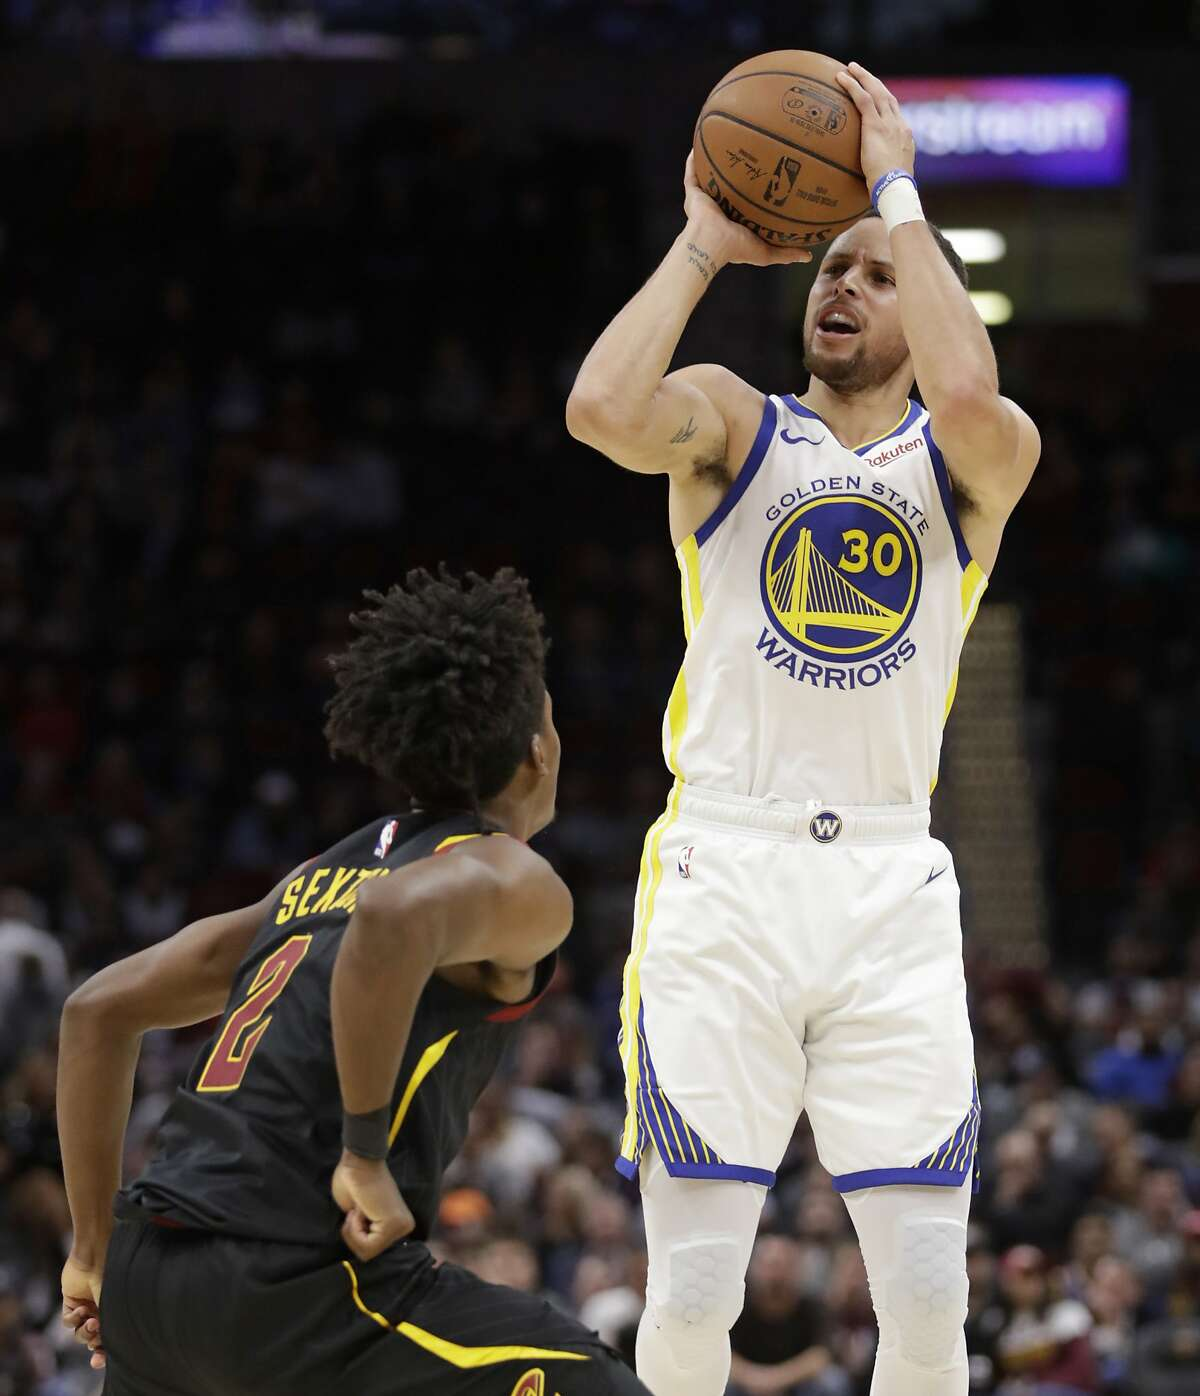 Golden State Warriors' Stephen Curry (30) shoots over Cleveland Cavaliers' Collin Sexton (2) in the second half of an NBA basketball game, Wednesday, Dec. 5, 2018, in Cleveland. (AP Photo/Tony Dejak)